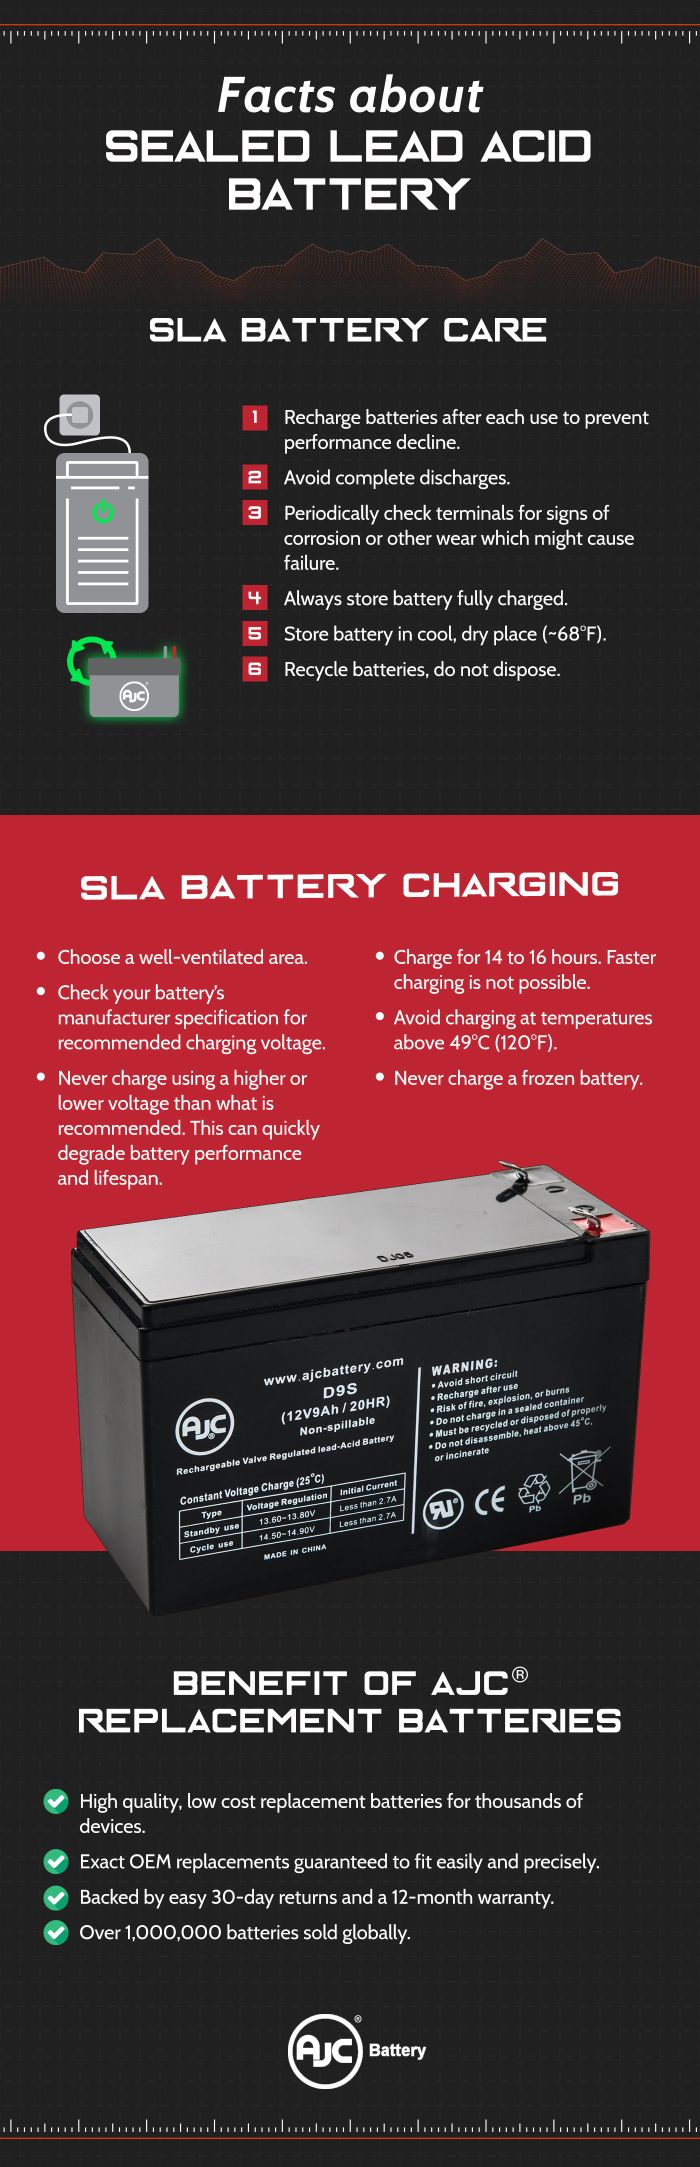 BX900R 12V 7Ah UPS Battery APC Back-UPS Back-UPS XS900R This is an AJC Brand Replacement